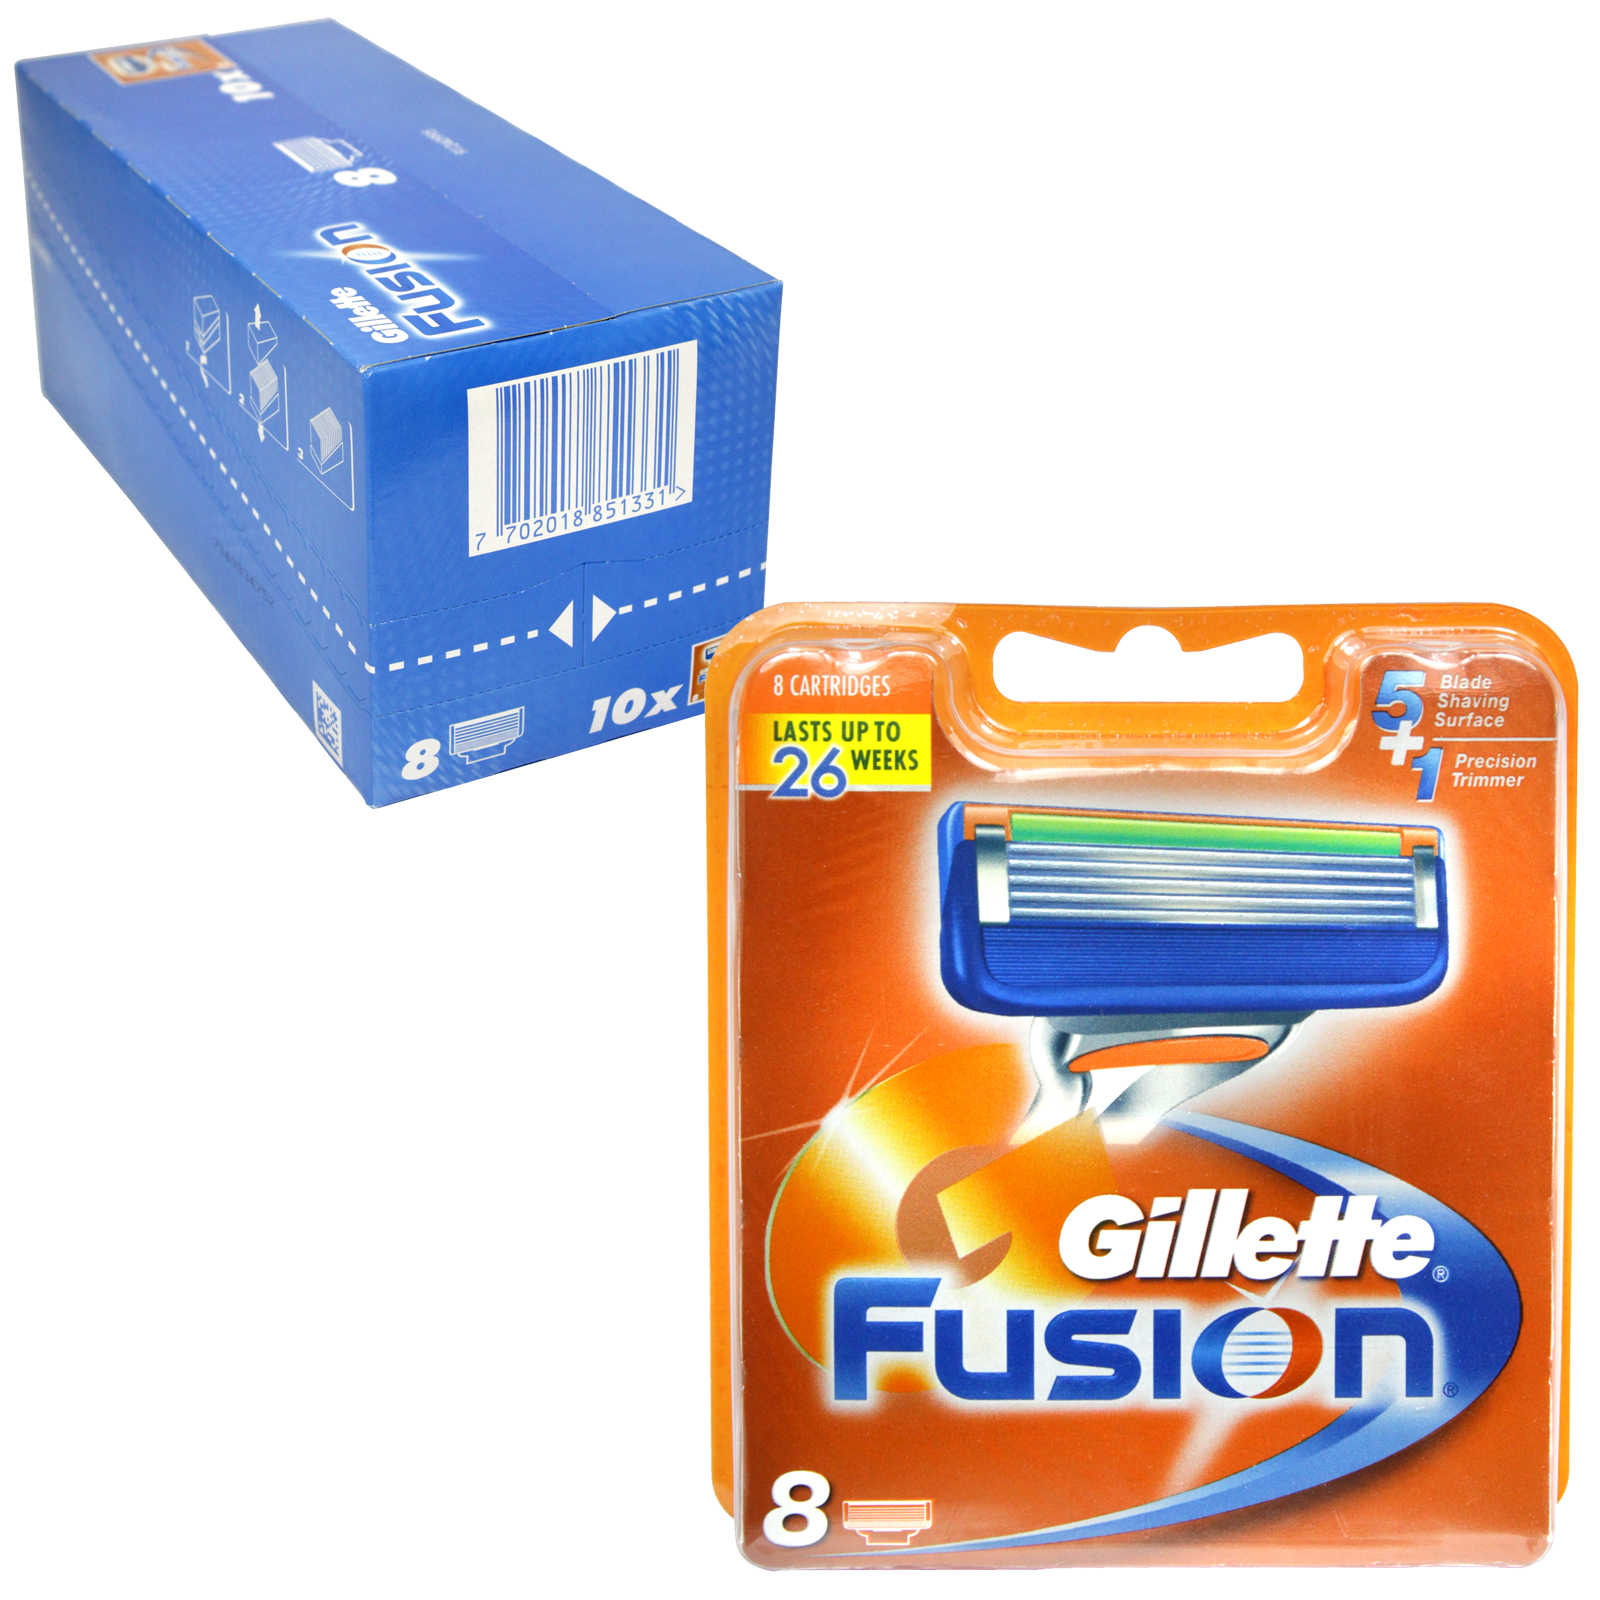 GILLETTE FUSION CARTRIDGES 8'S